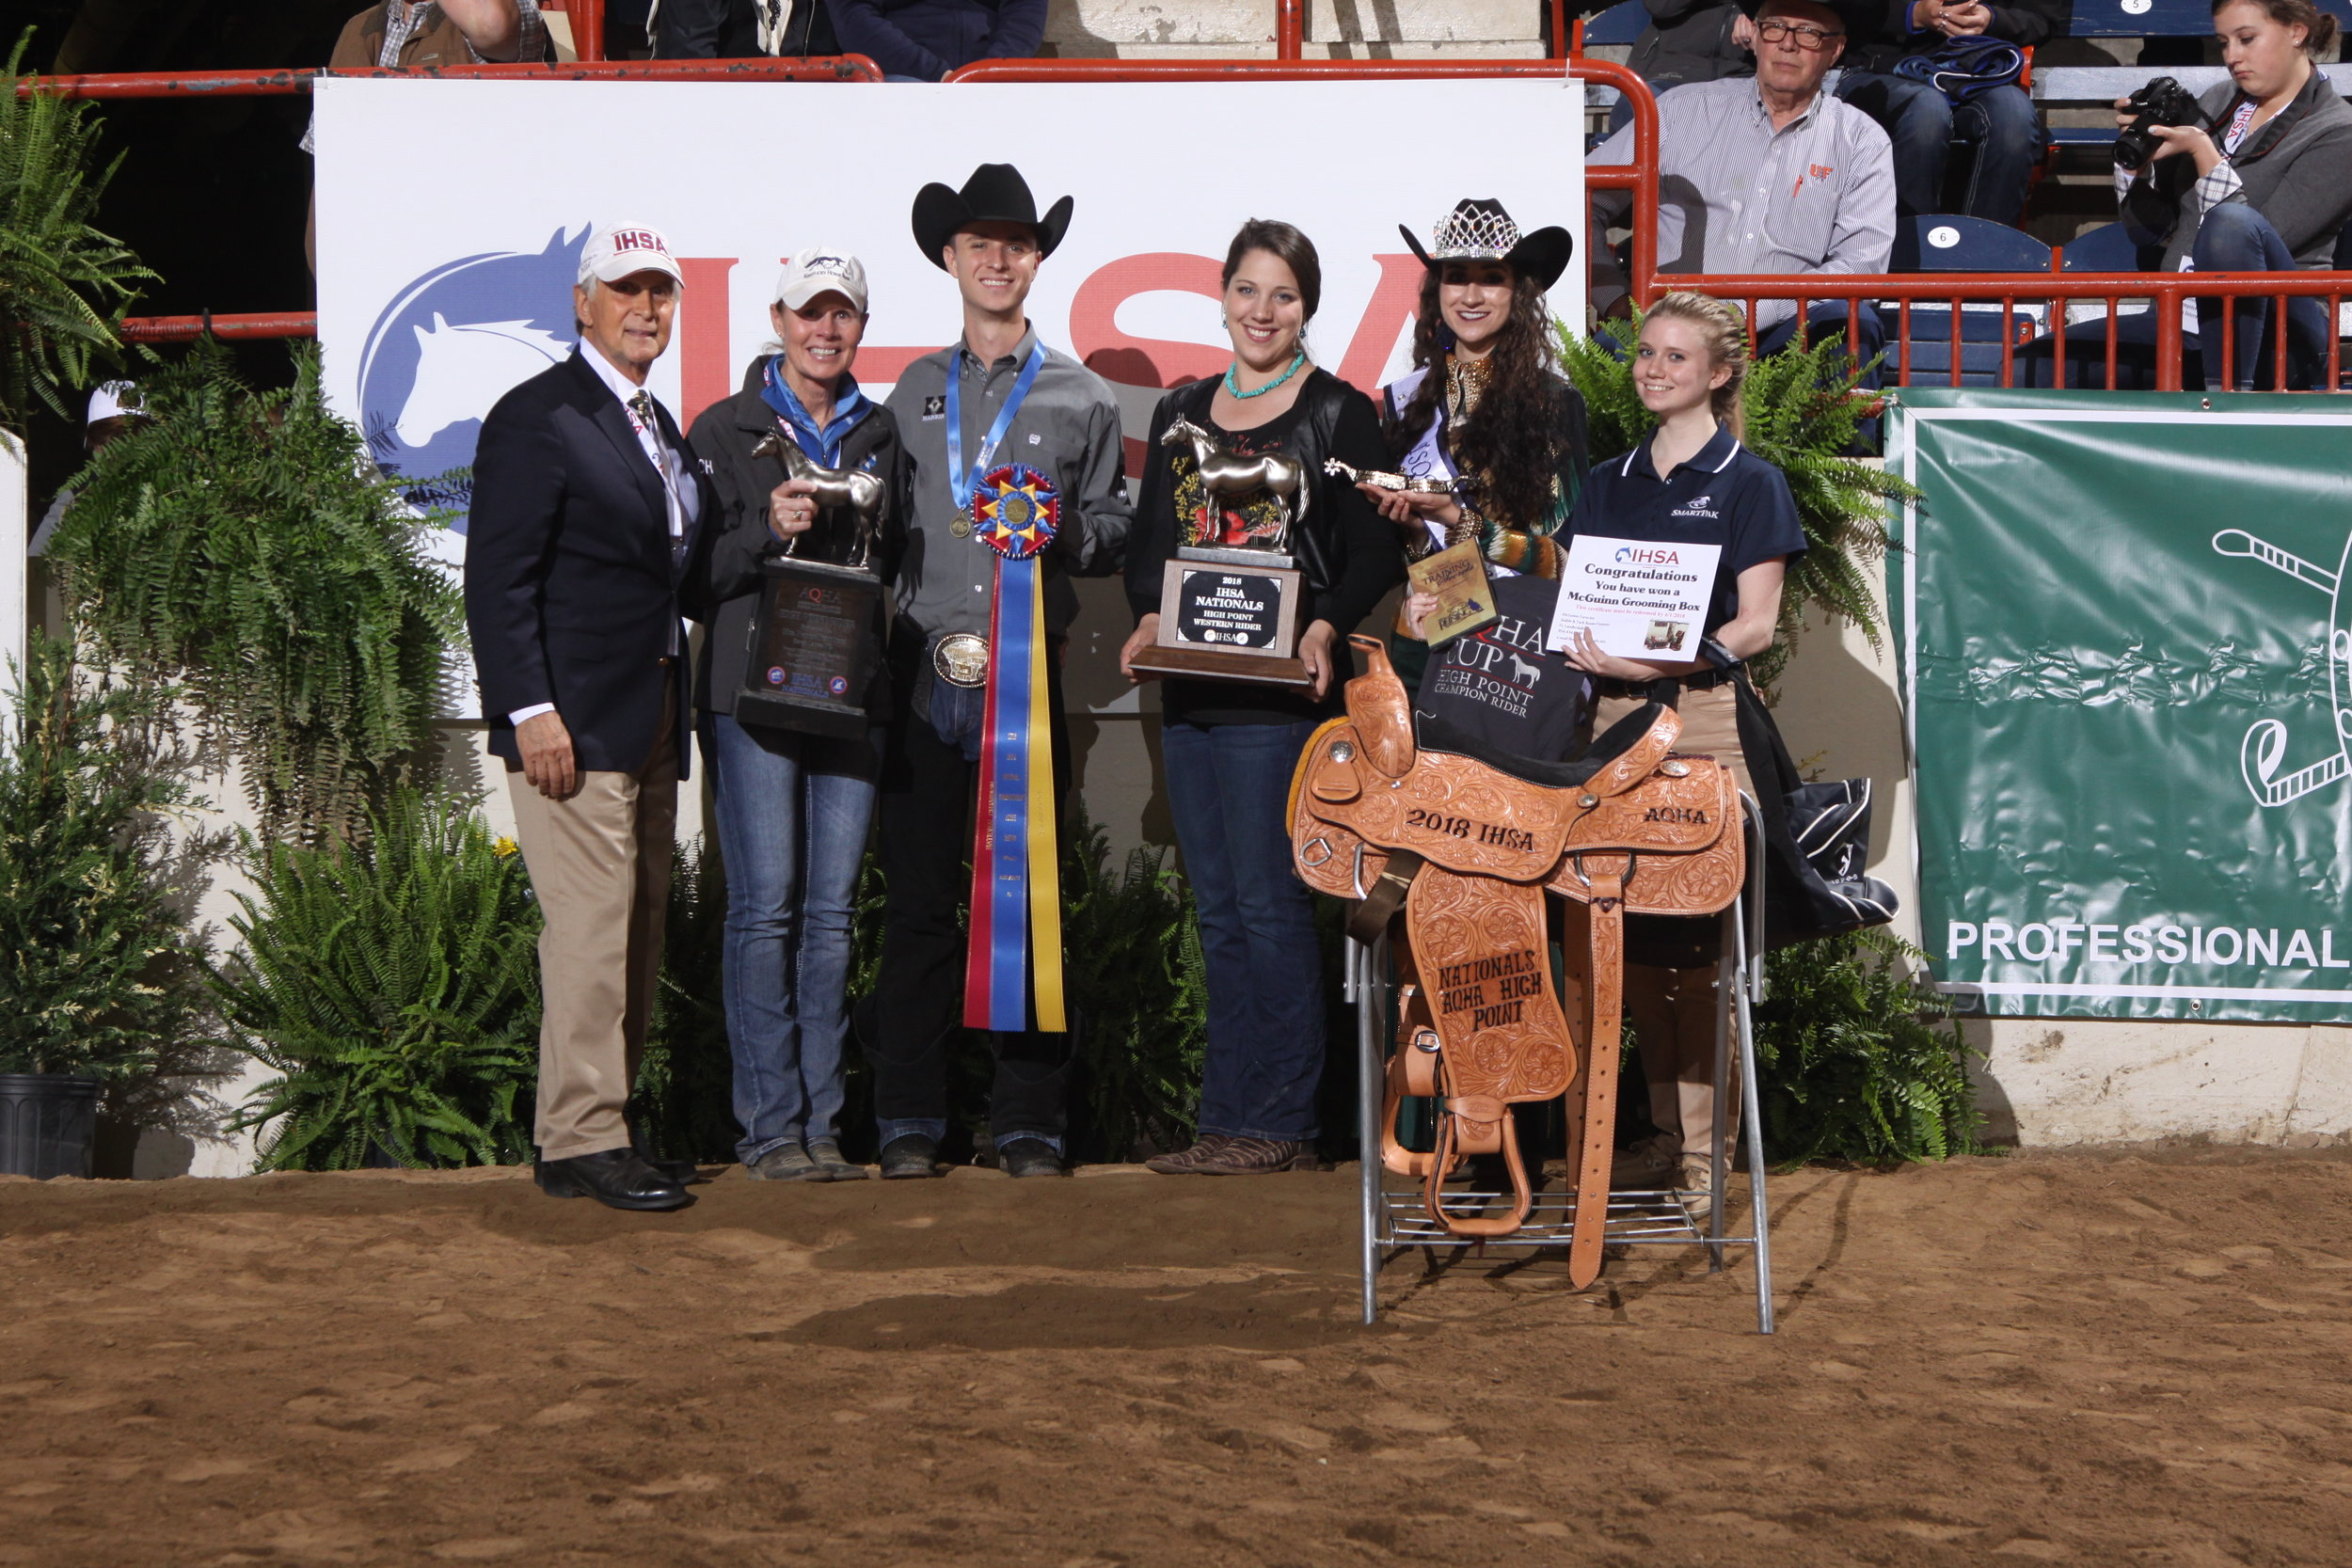 Bob Cacchione, Carla Wennberg, Connor Smith and Cailin Caldwell from AQHA with a local AQHA representative. Photo by  alcookphoto.com